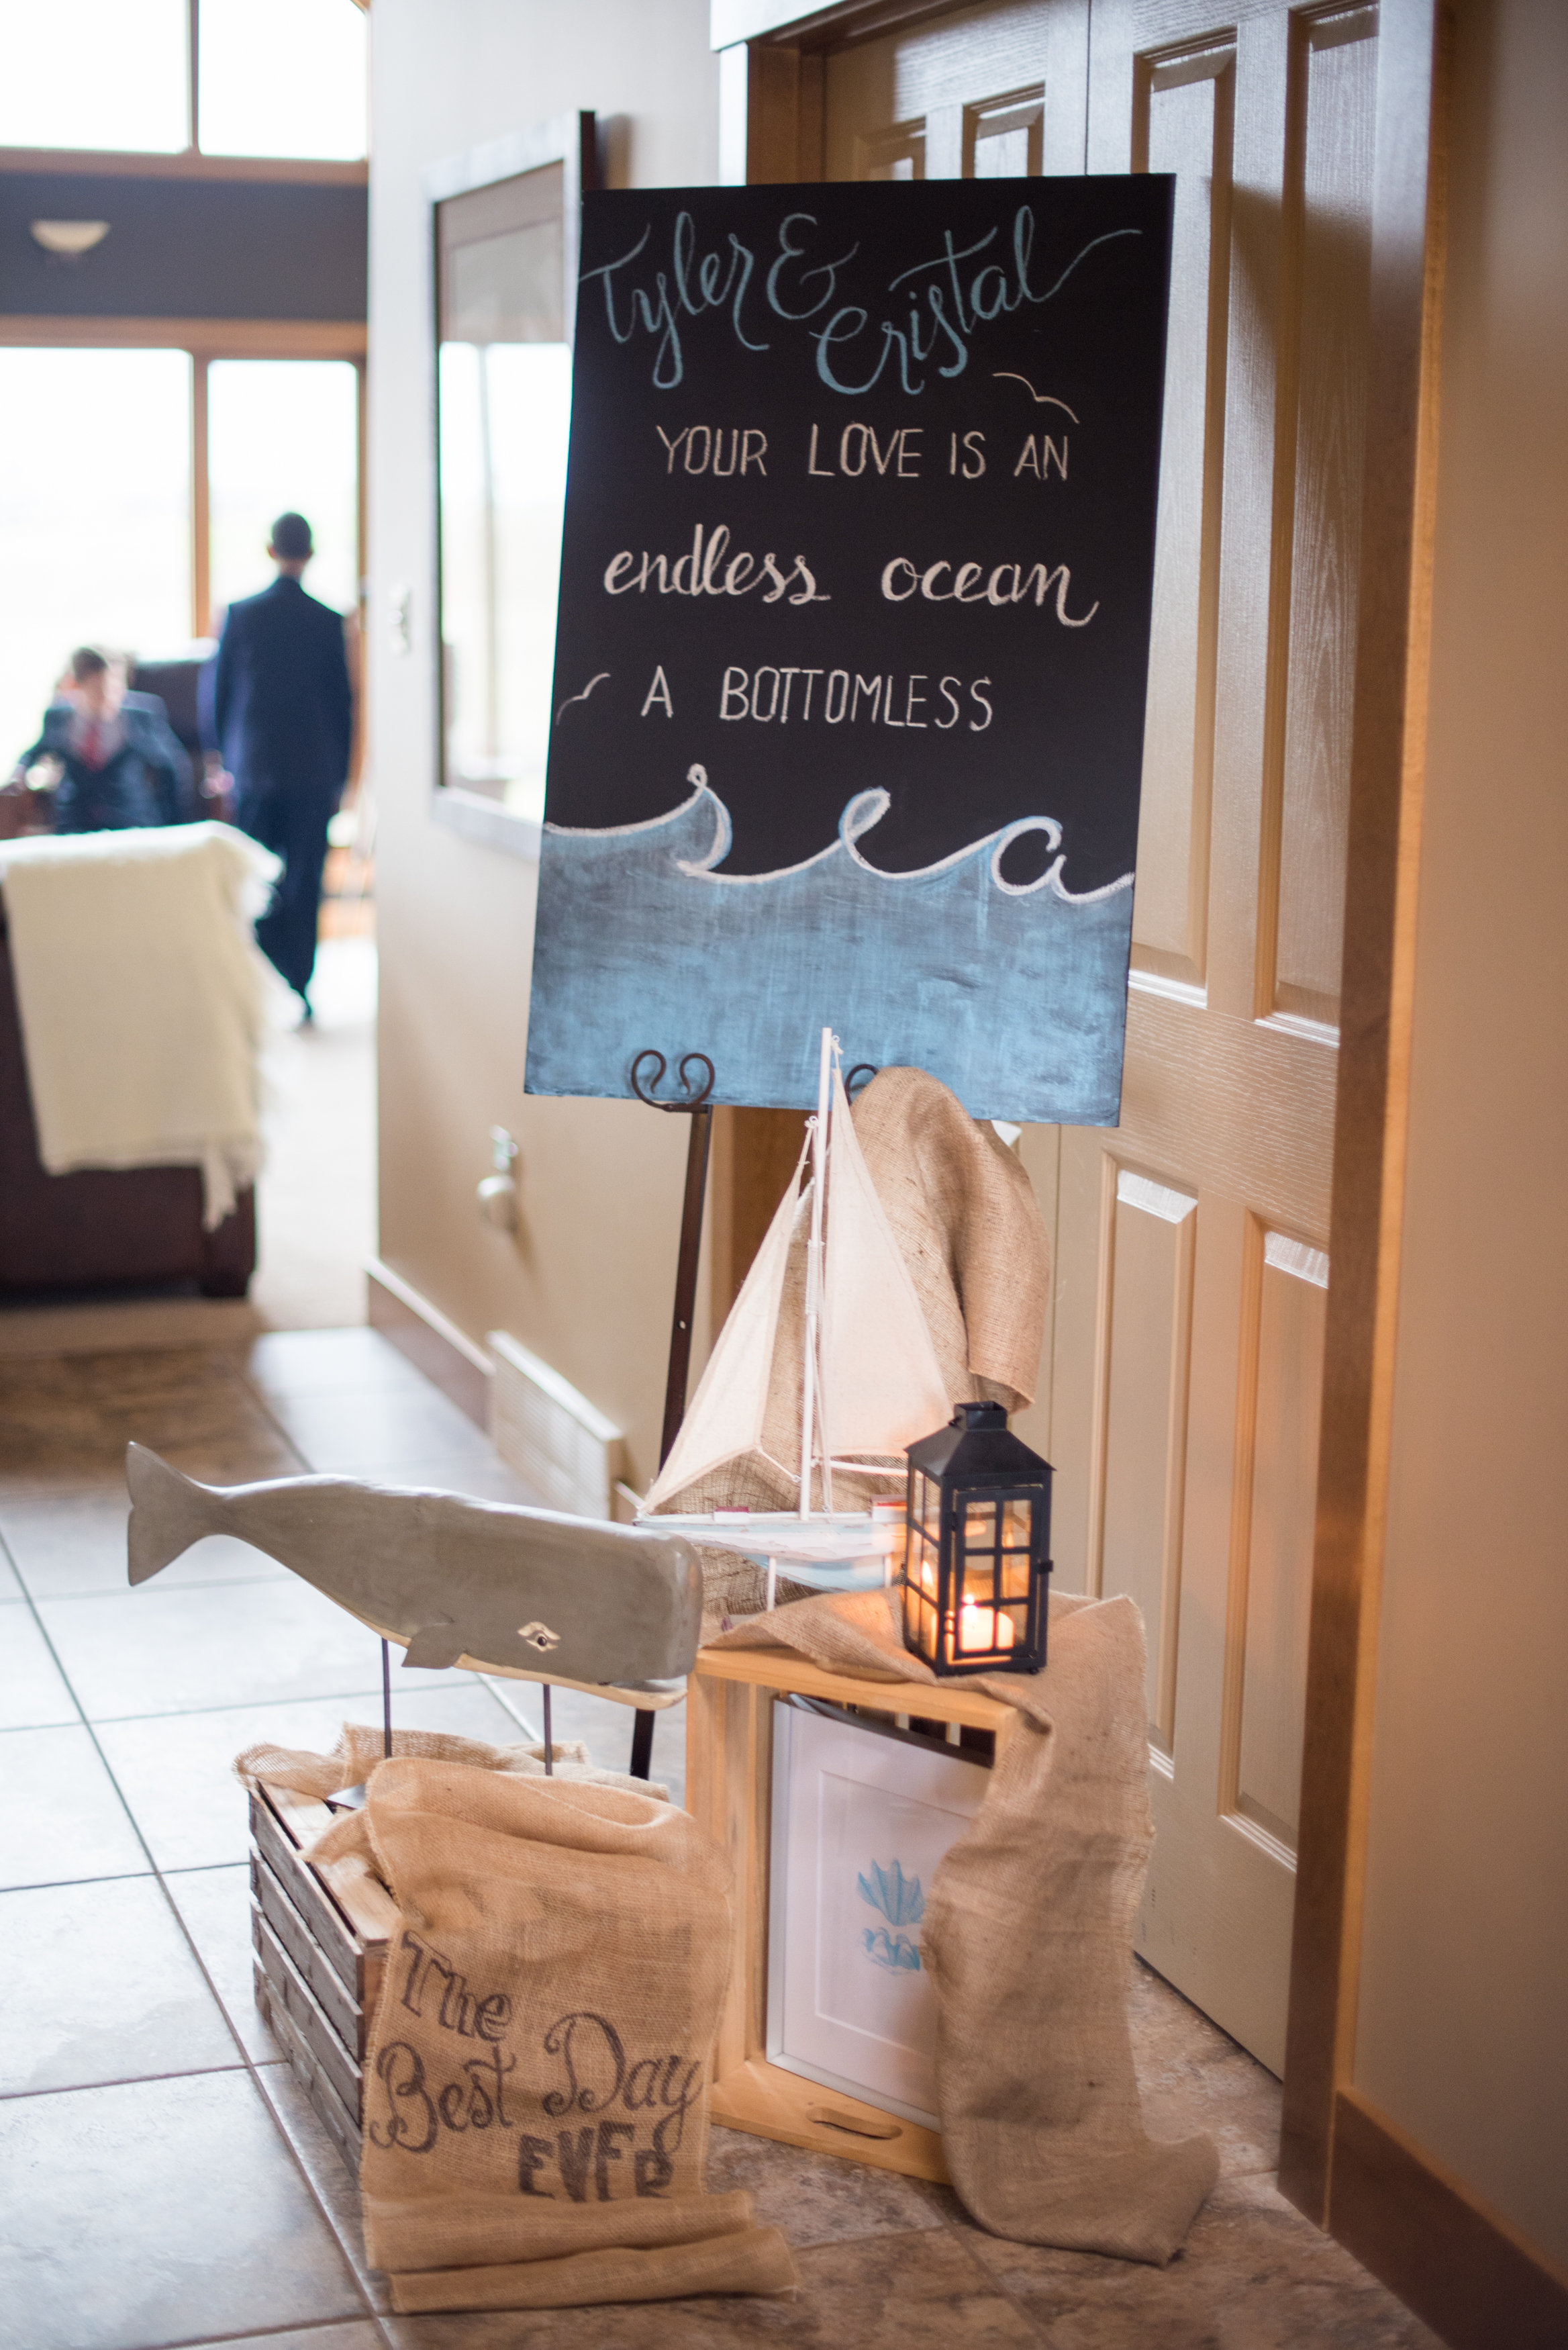 Celebrating Tyler's love of the ocean that theme was weaved throughout the decor for a relaxing Sunday morning brunch.